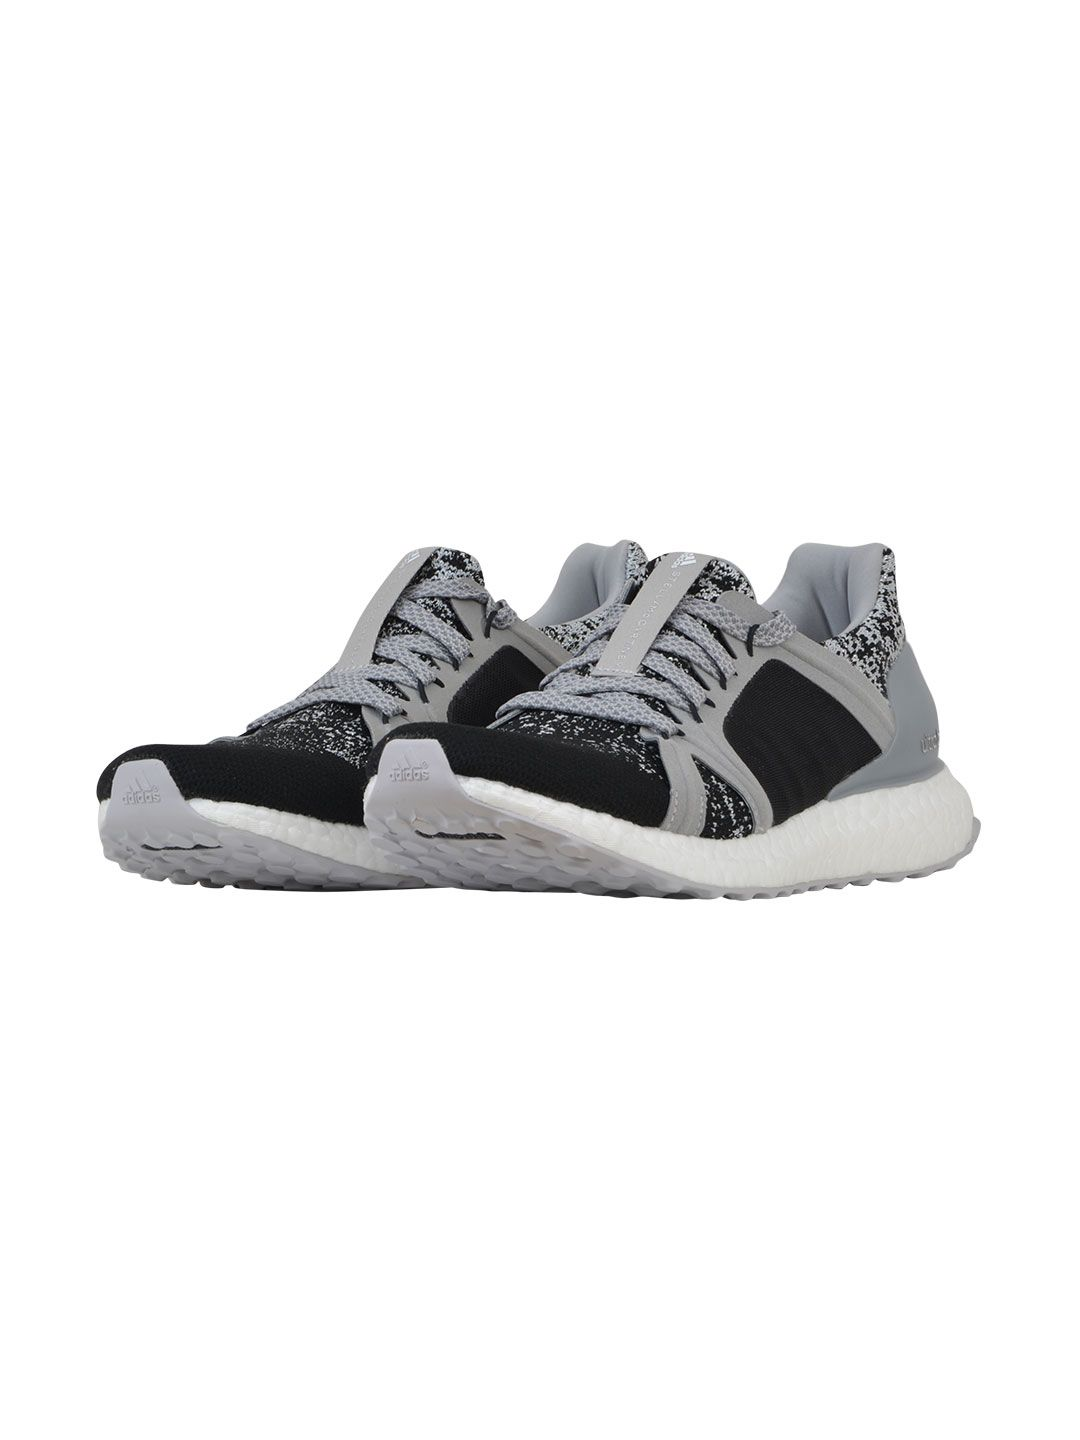 ... Adidas by Stella McCartney Ultra Boost Sneakers ...